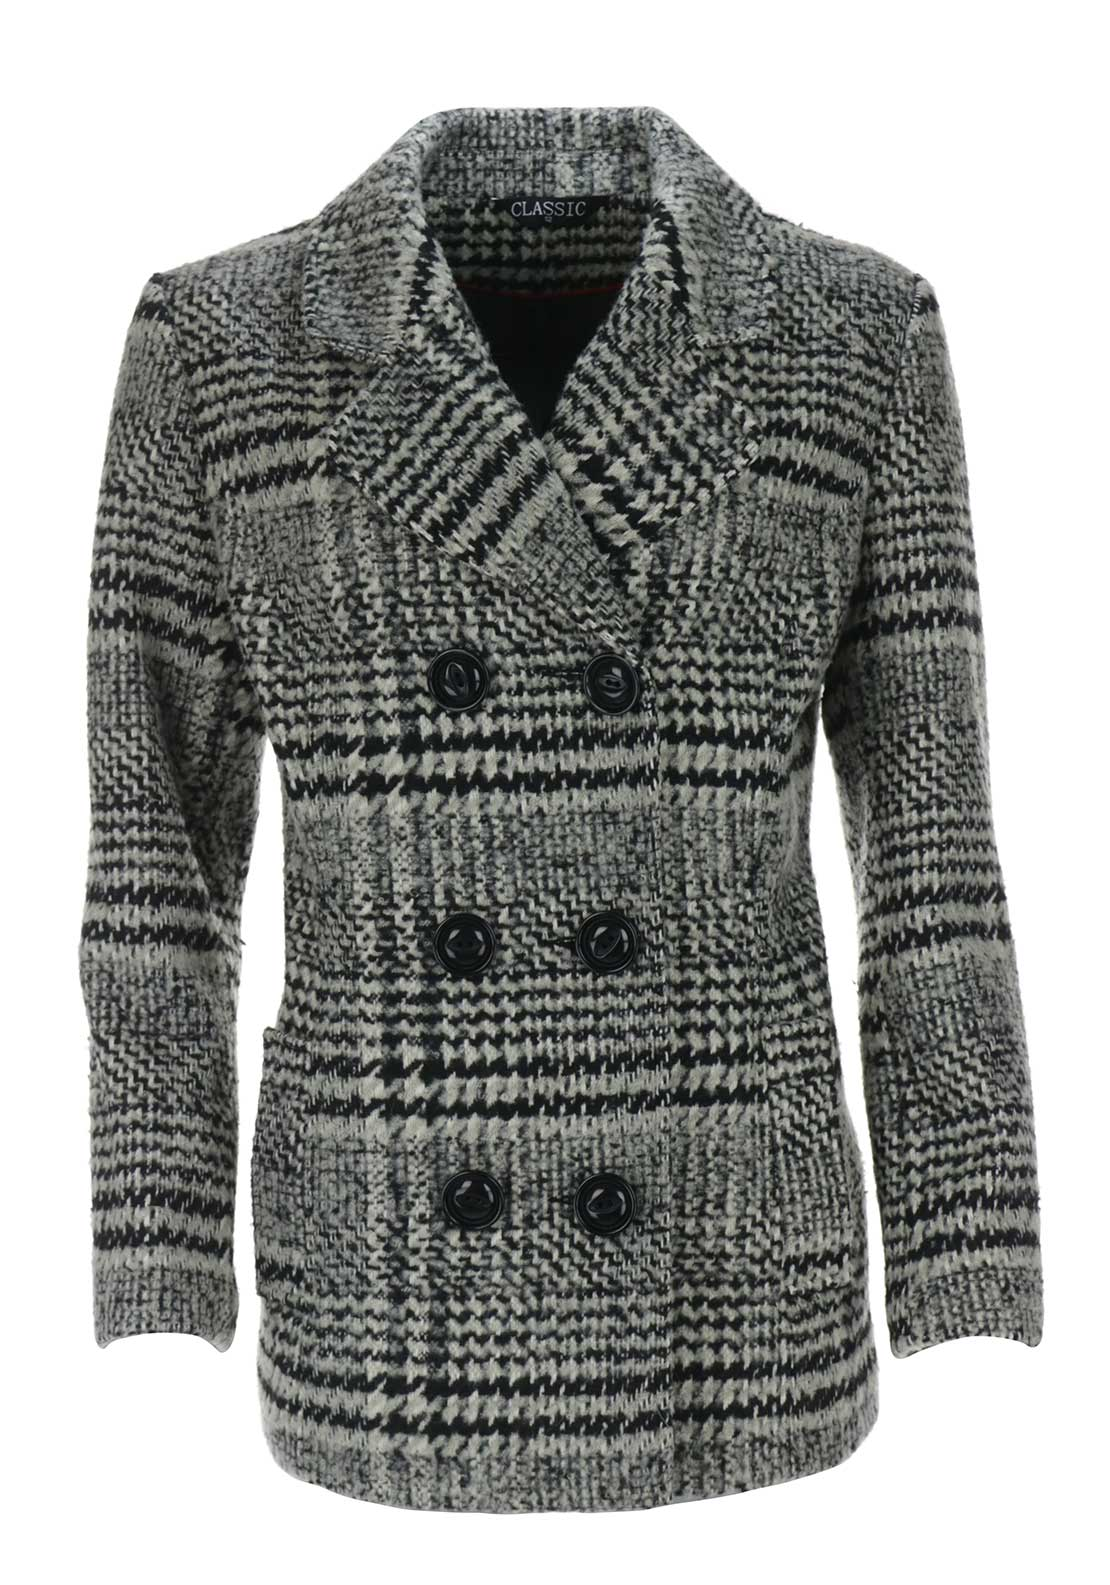 Boutique Collection Tweed Print Pea Coat, Black Multi